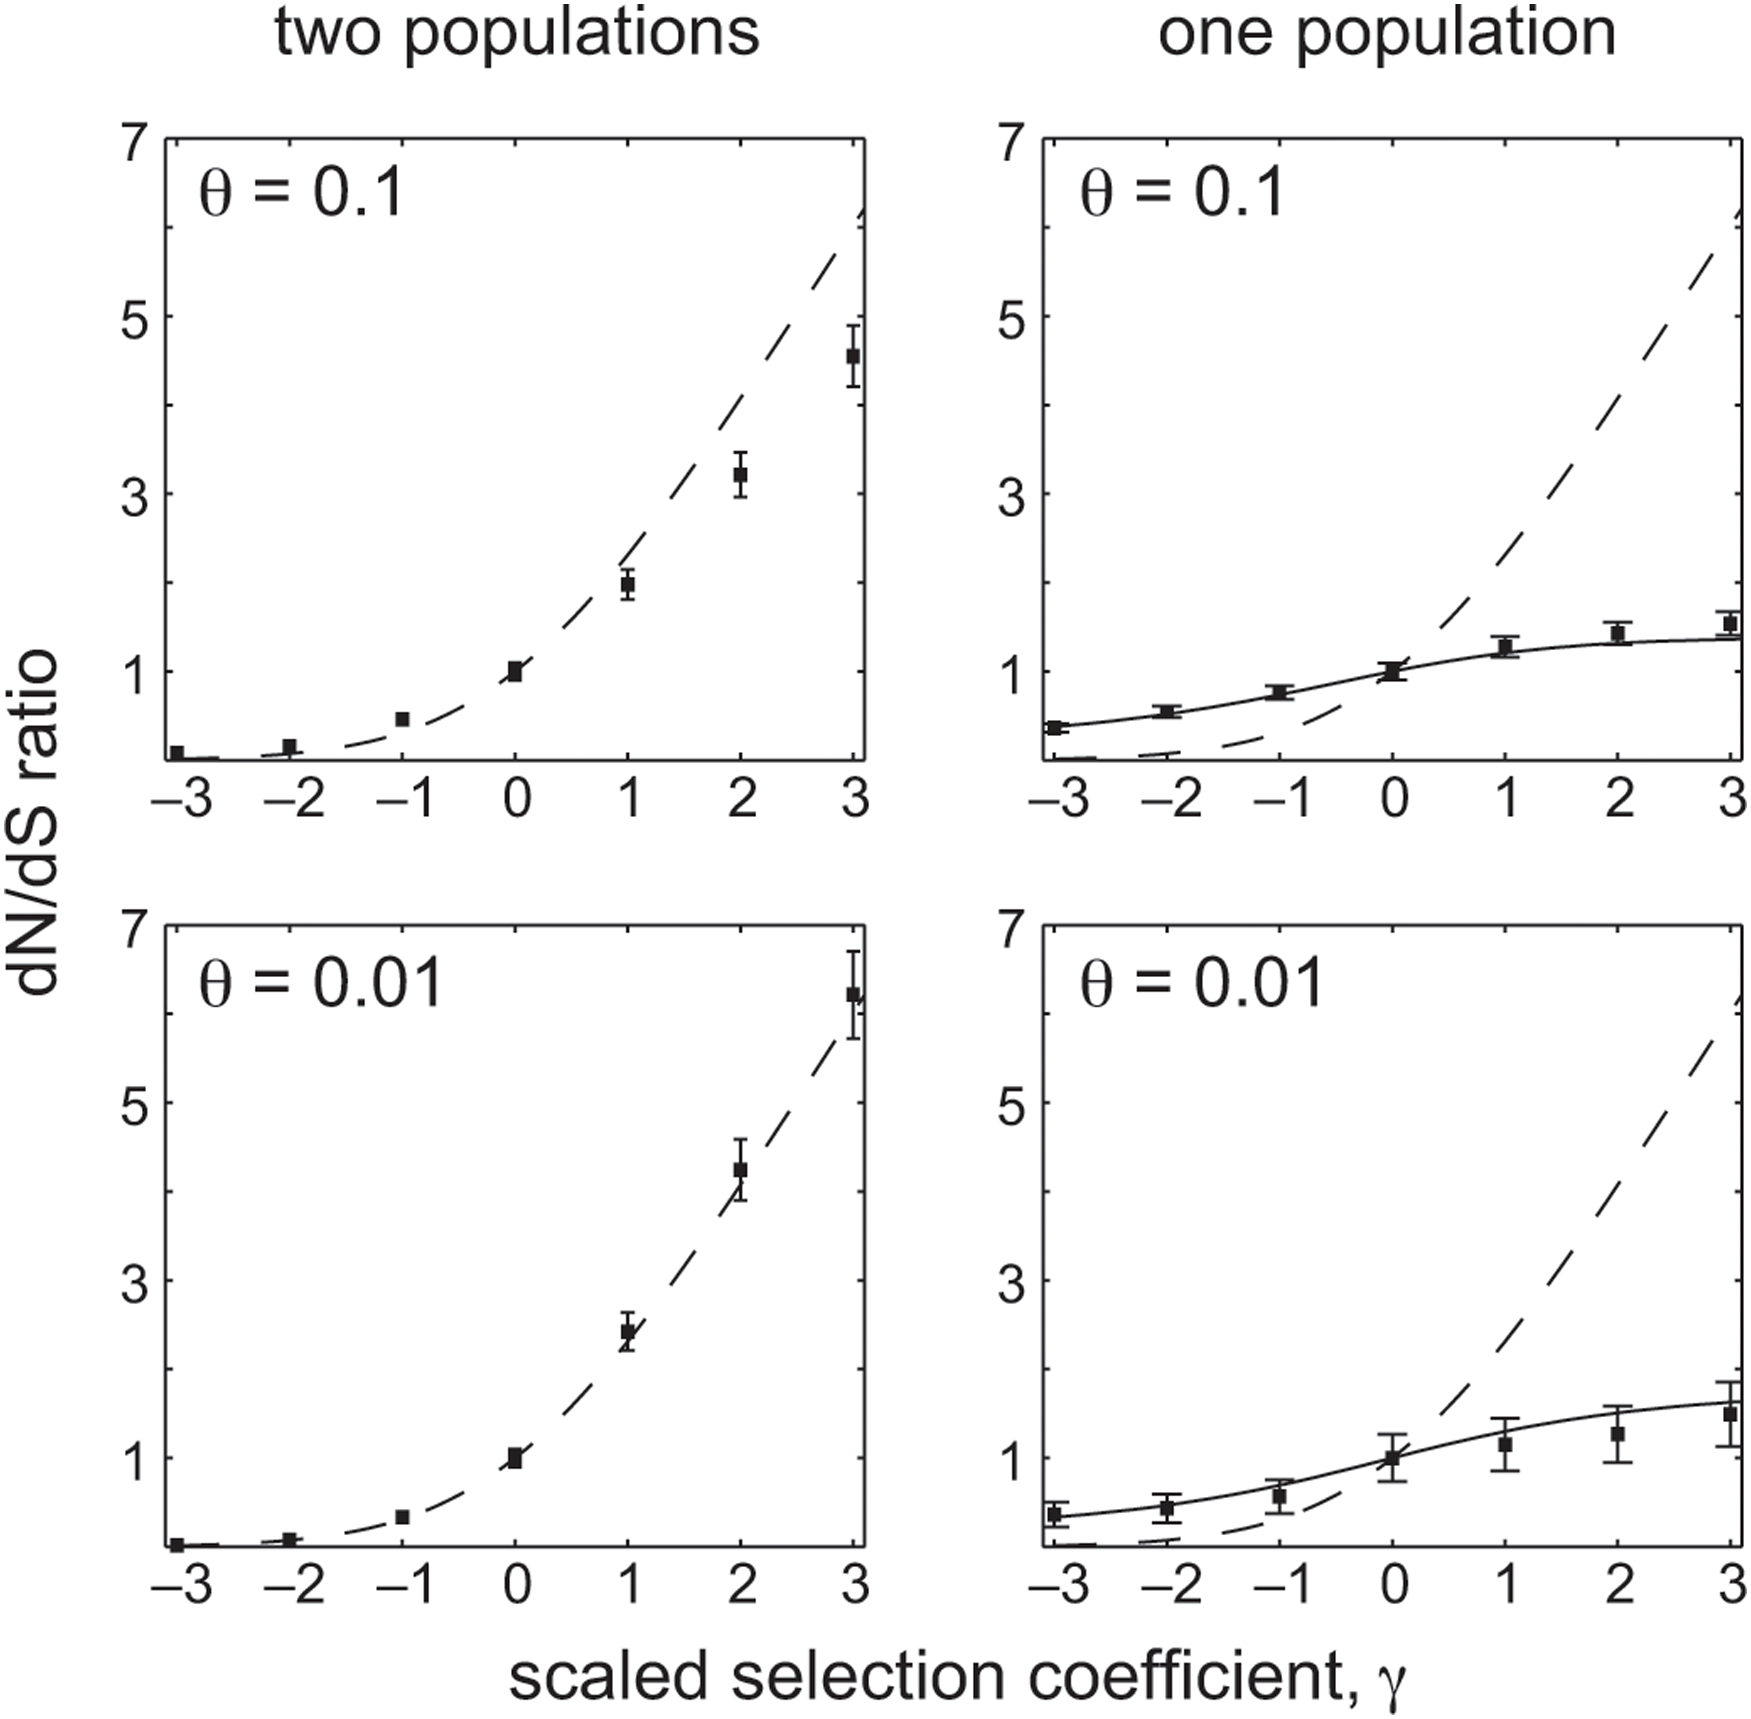 The relationship between the scaled selection coefficient, <i>γ</i>, and the dN/dS ratio in simulated Wright-Fisher populations.